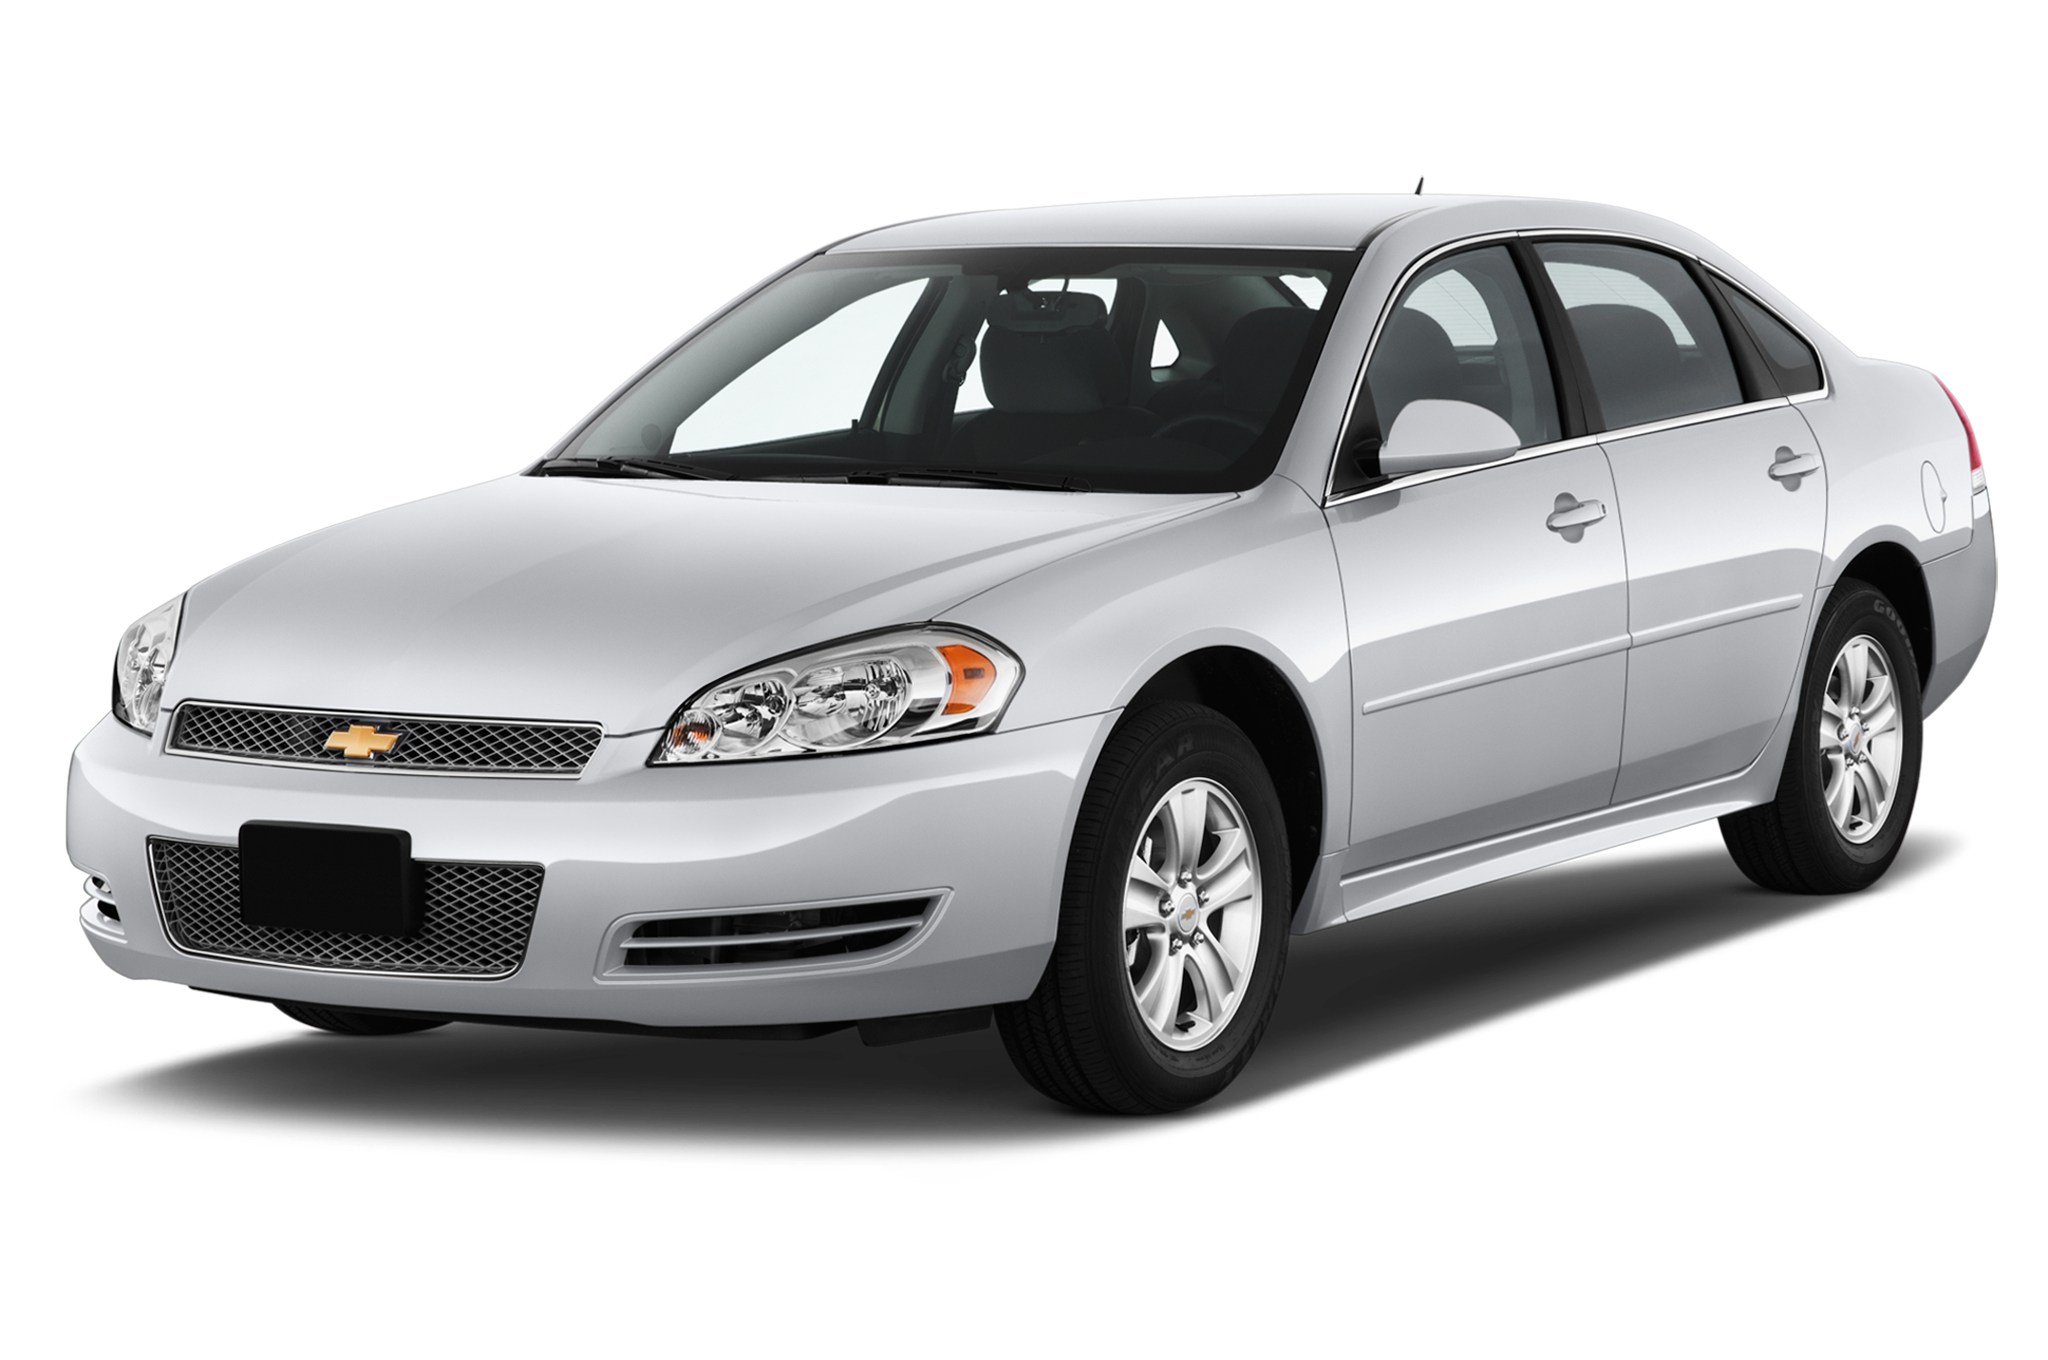 2013 chevrolet impala to continue as fleet only model. Black Bedroom Furniture Sets. Home Design Ideas